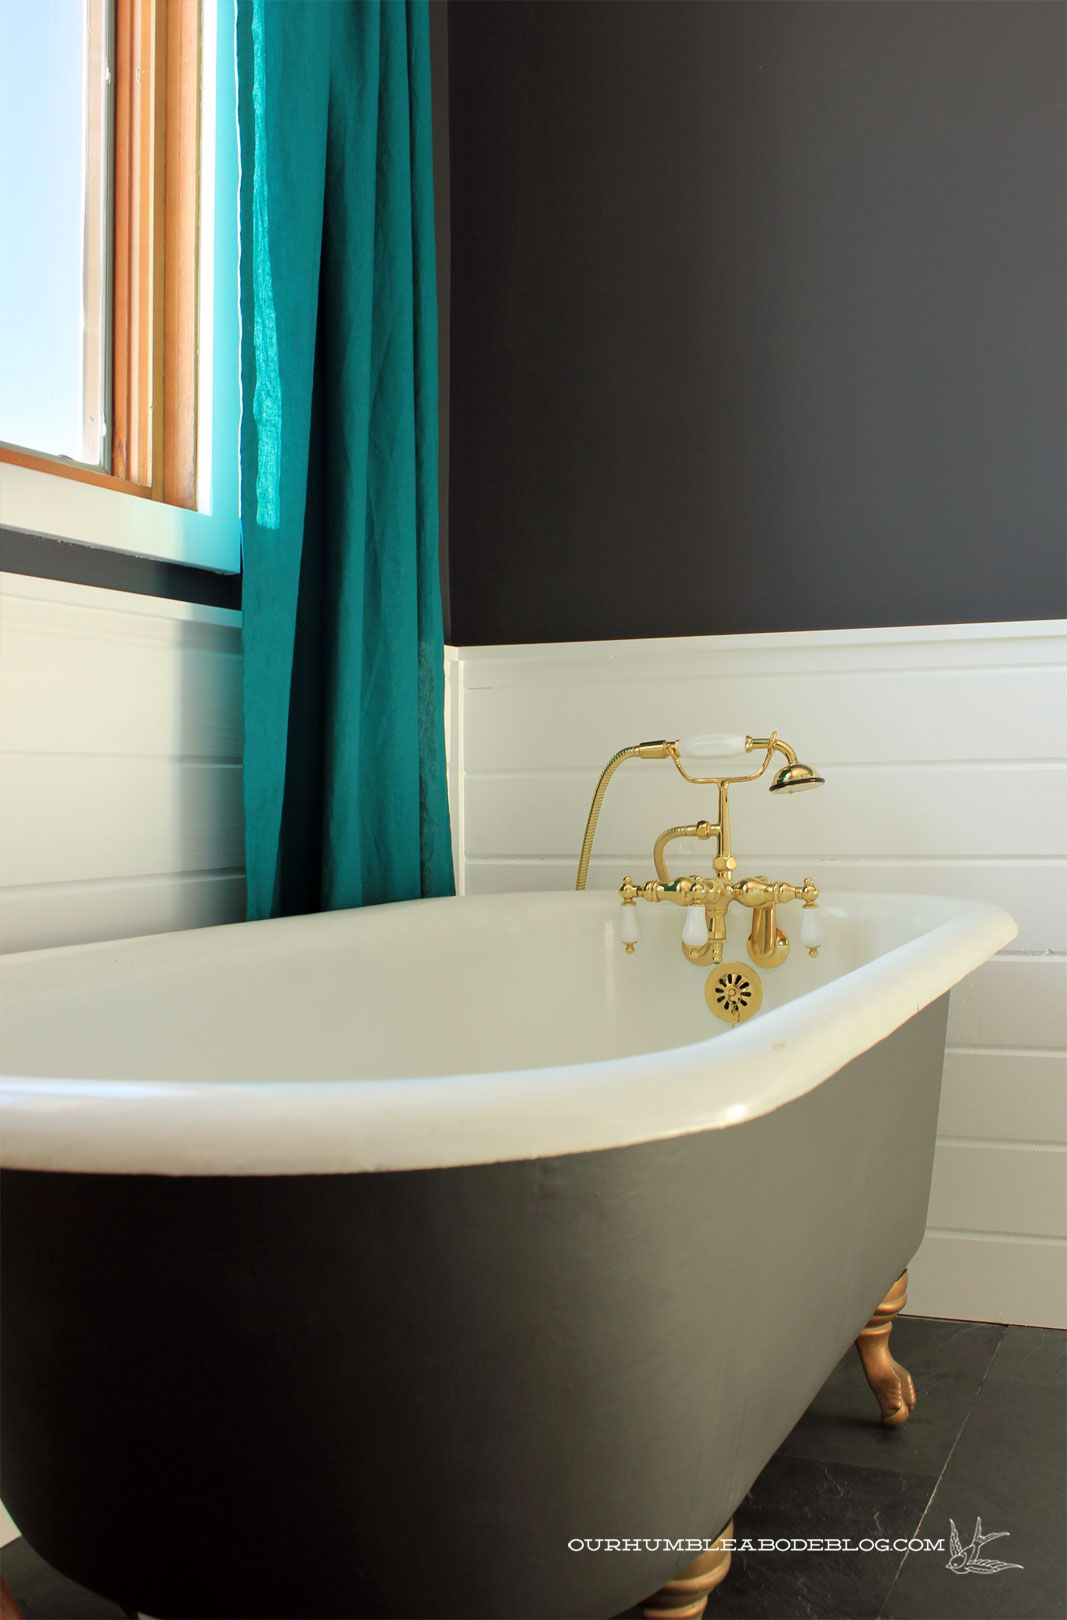 Teal Curtains And Black And White Claw Foot Tub With Gold